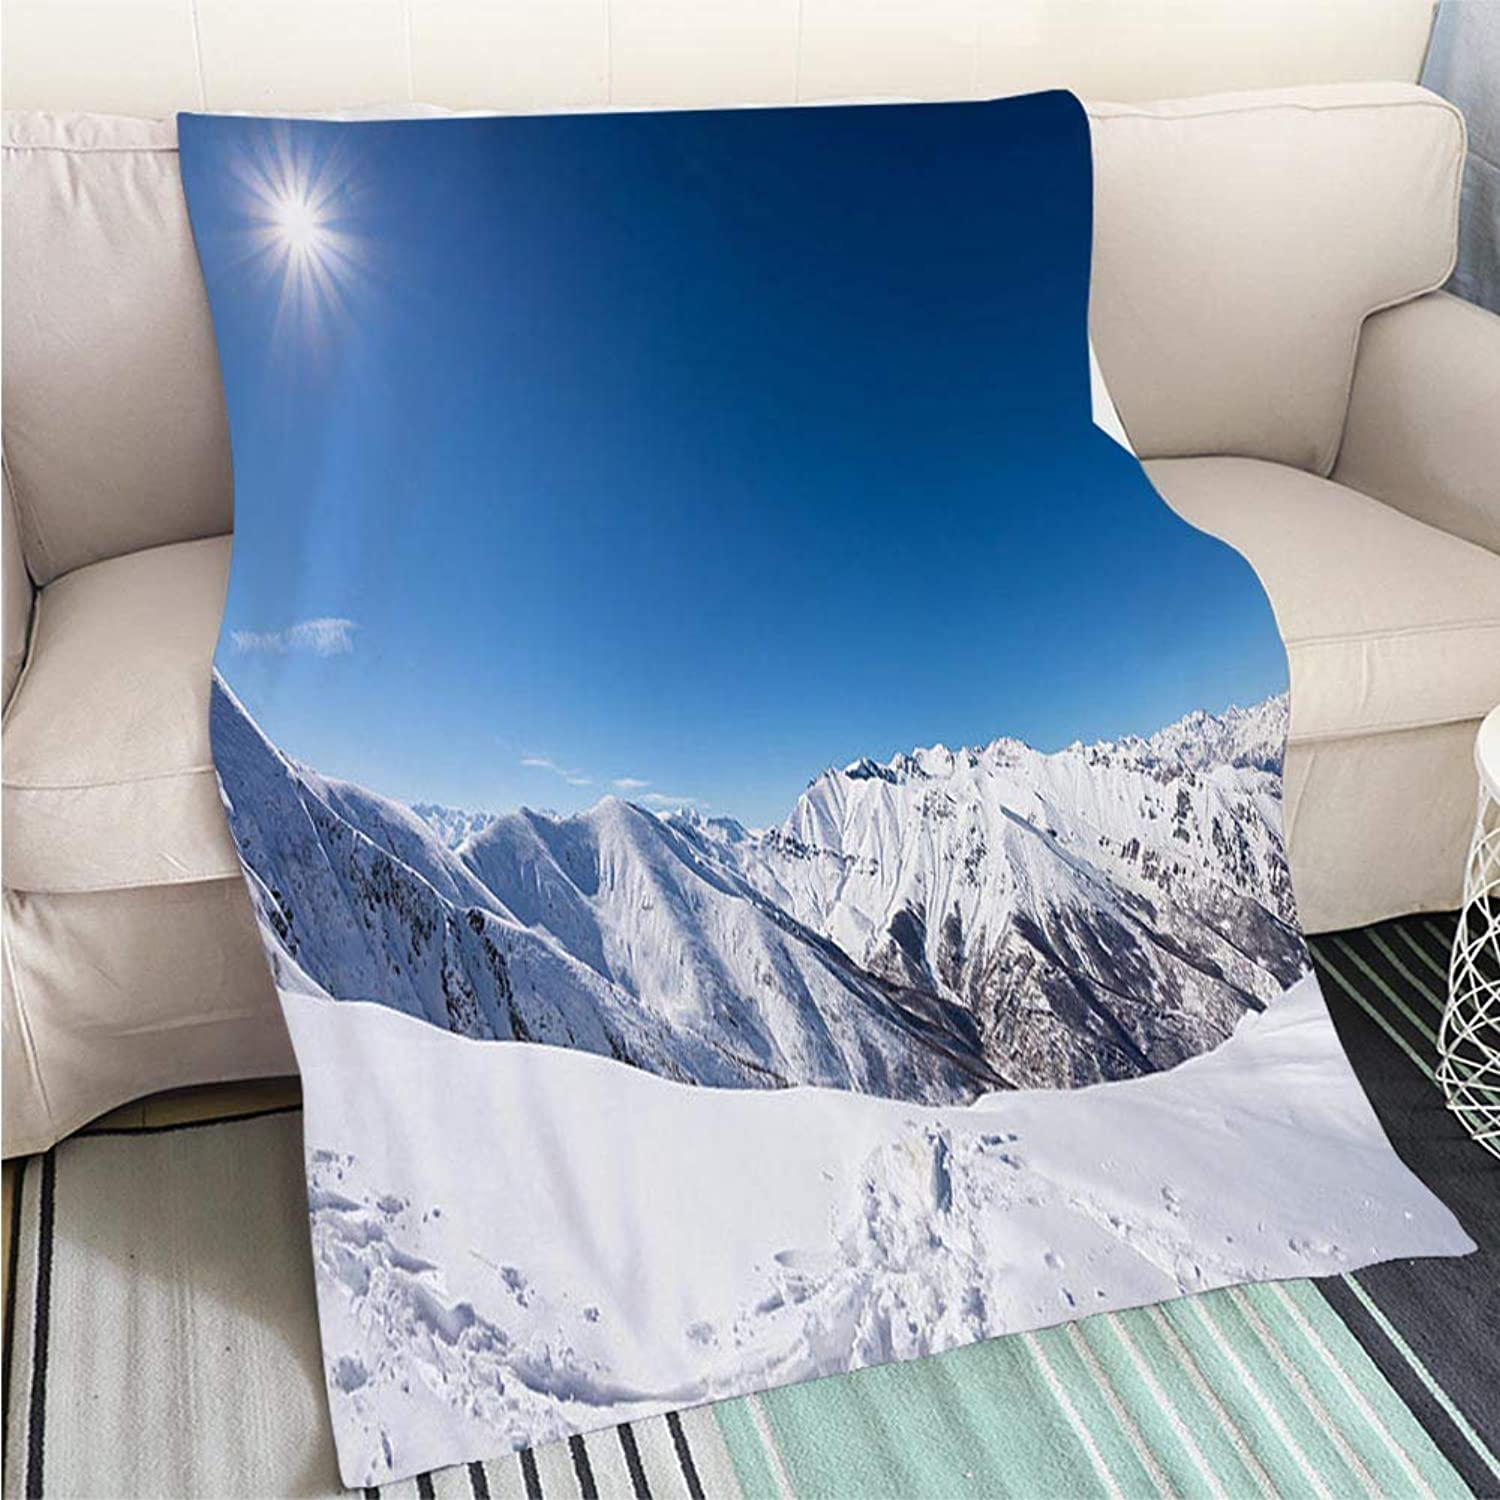 Home Digital Printing Thicken Blanket Sun Star Glowing Over snowcapped Mountain Range Italian Alps Perfect for Couch Sofa or Bed Cool Quilt